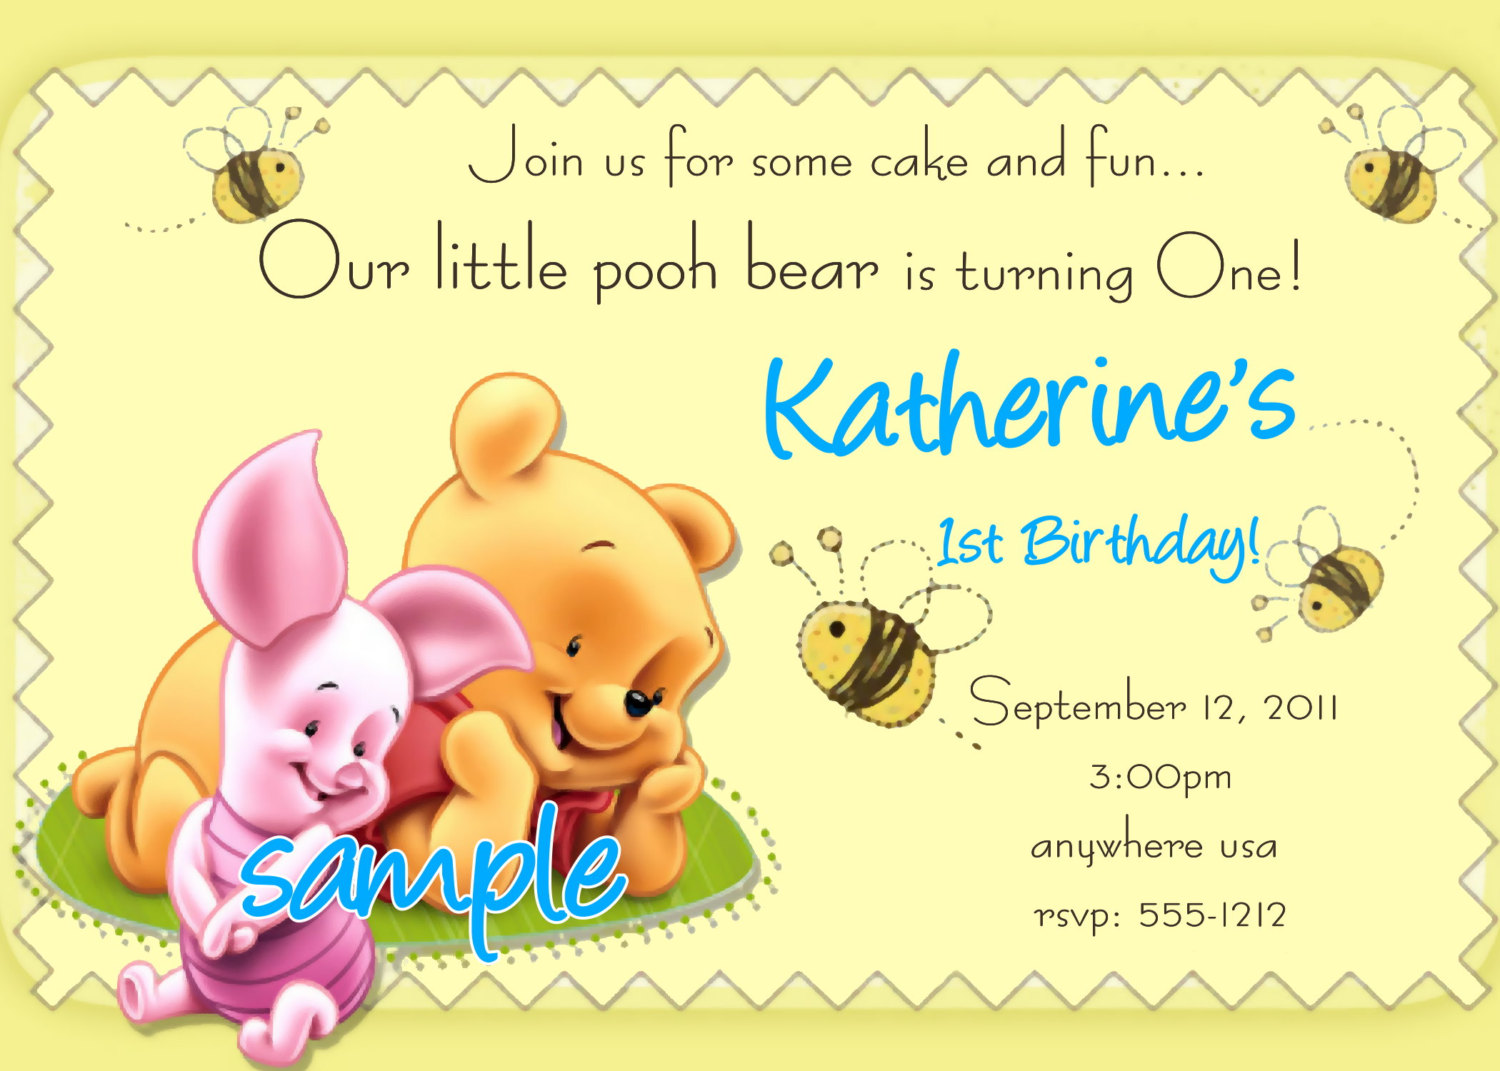 winnie the pooh photo birthday invitations ; best-maker-birthday-invitation-cards-nice-sample-yellow-background-winnie-the-pooh-and-piglet-picture-ornament